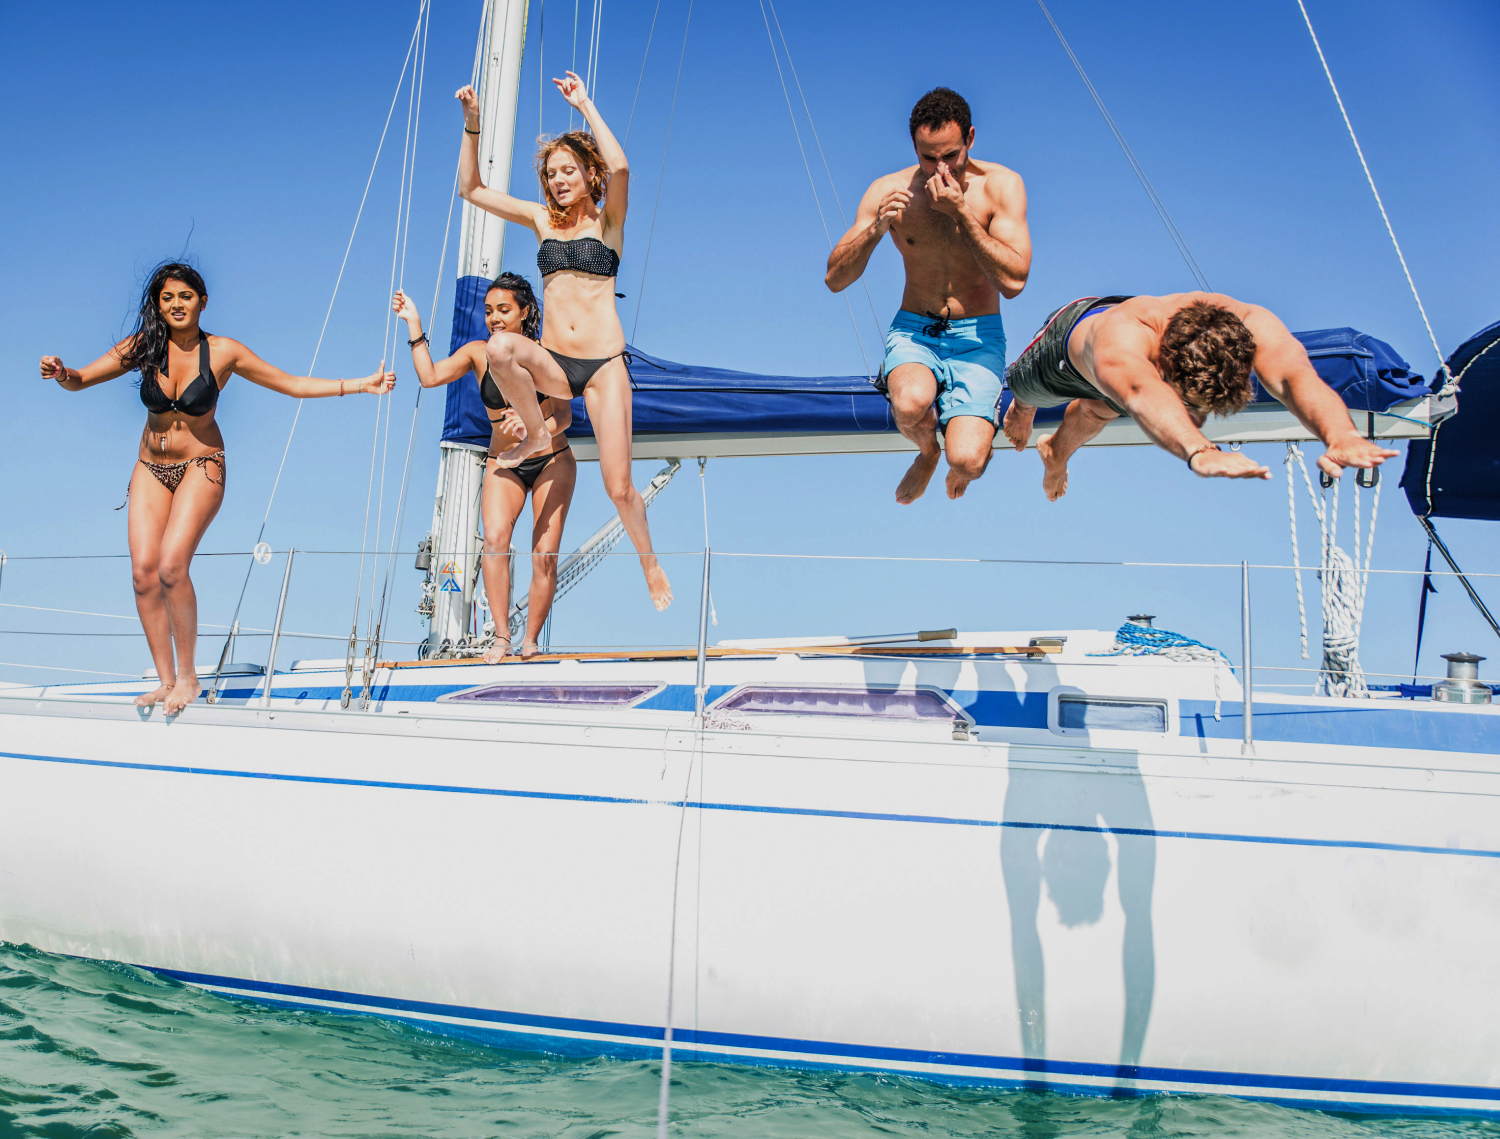 friends jumping off a boat into the sea